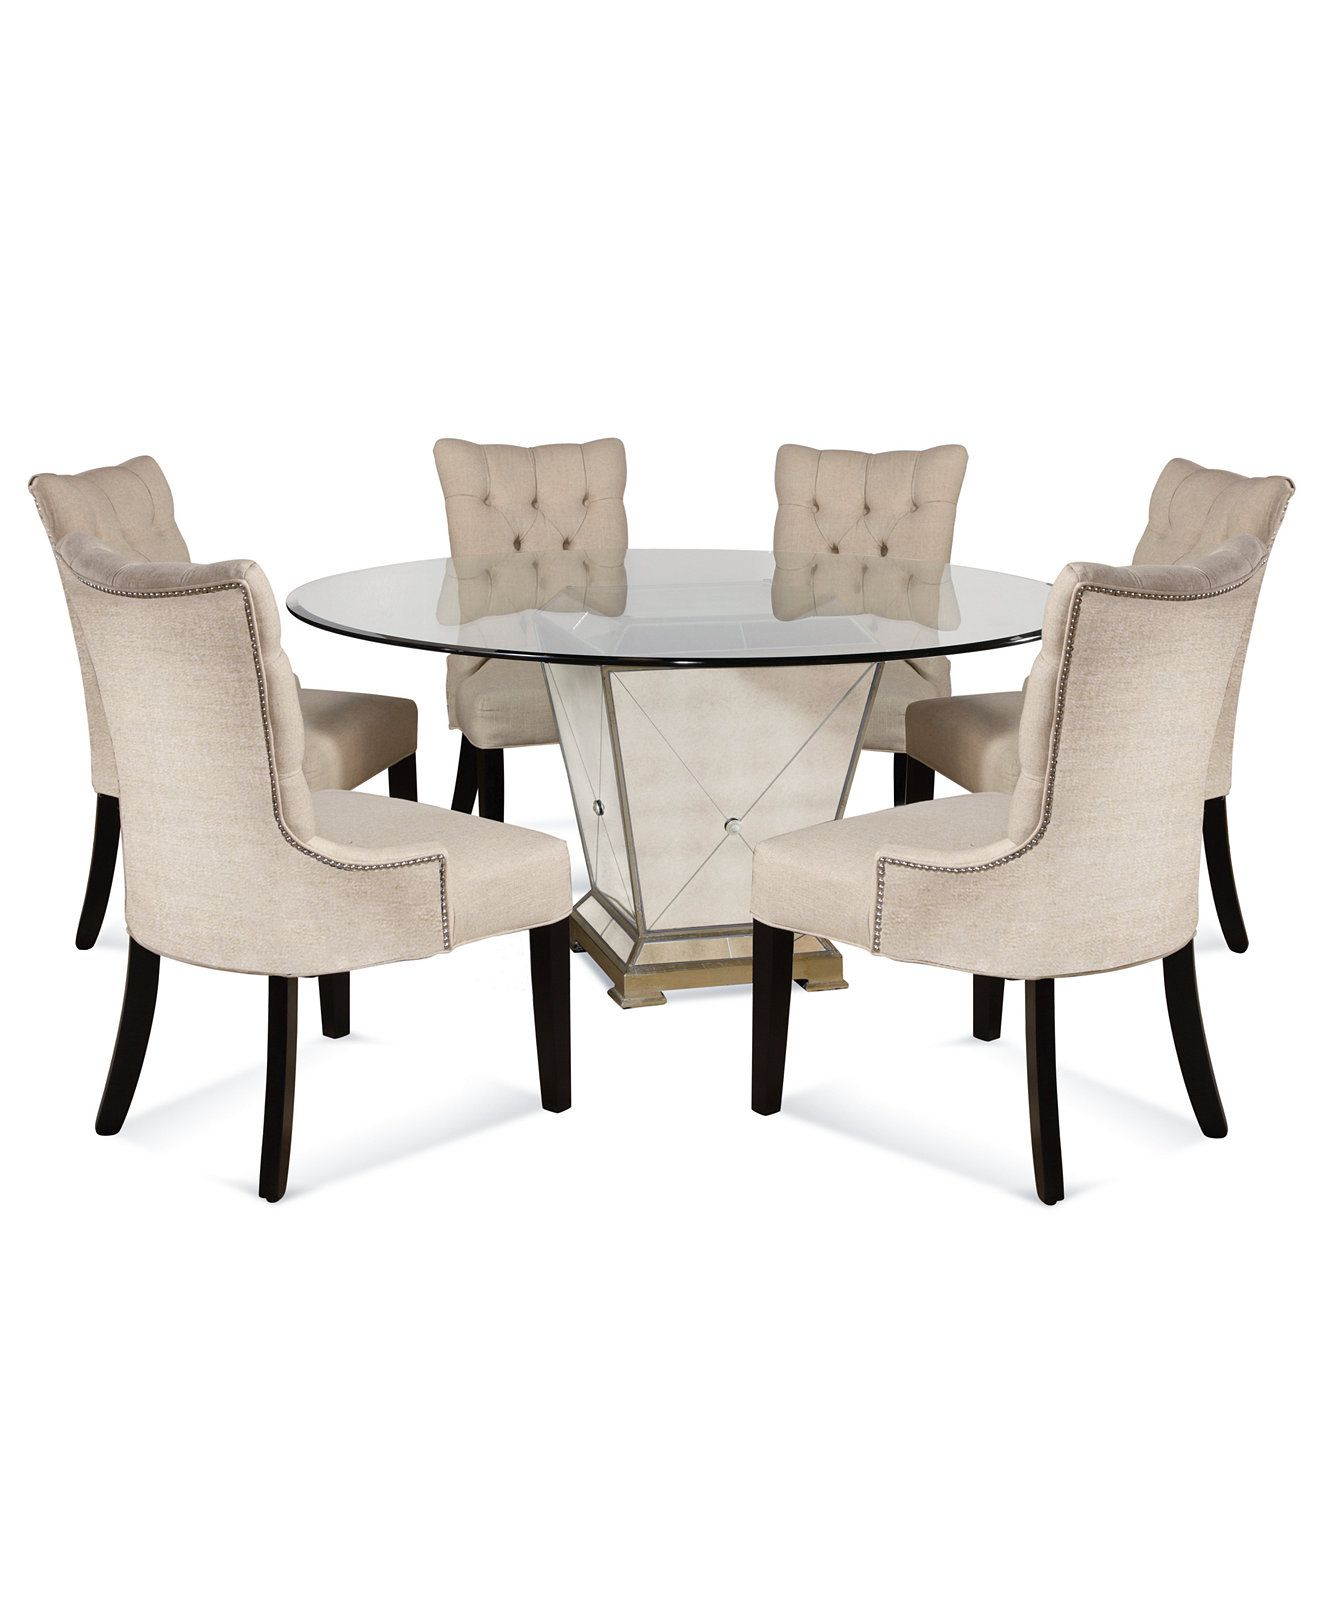 marais dining room furniture 7 piece set 60 mirrored dining table and 6 chairs dining. Black Bedroom Furniture Sets. Home Design Ideas